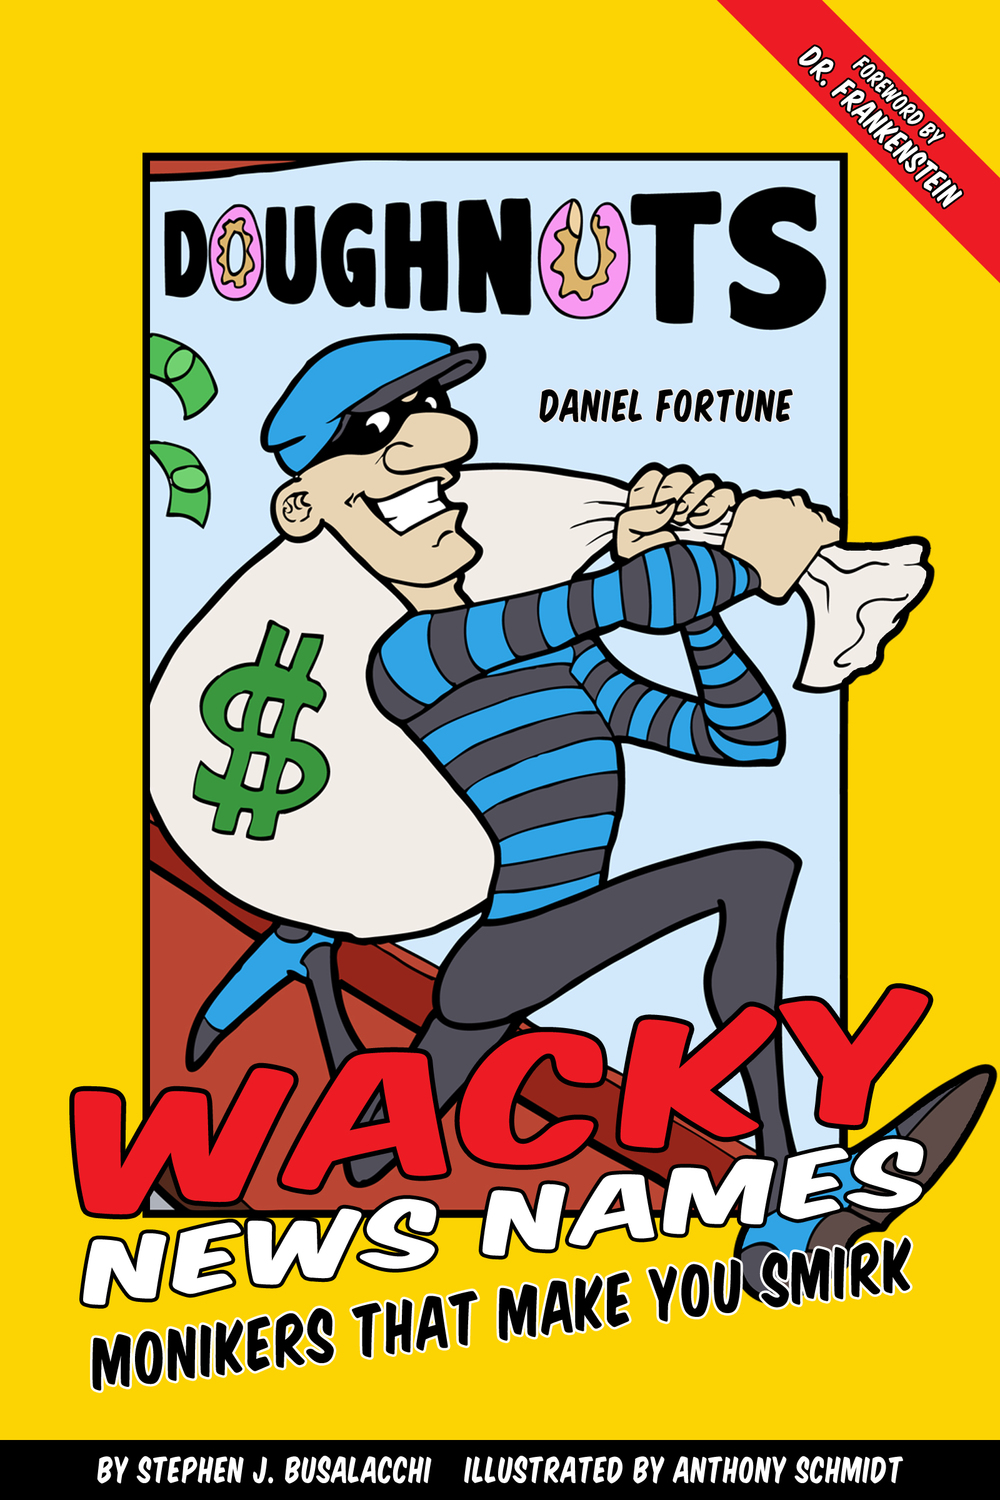 Wacky News Names E-Book